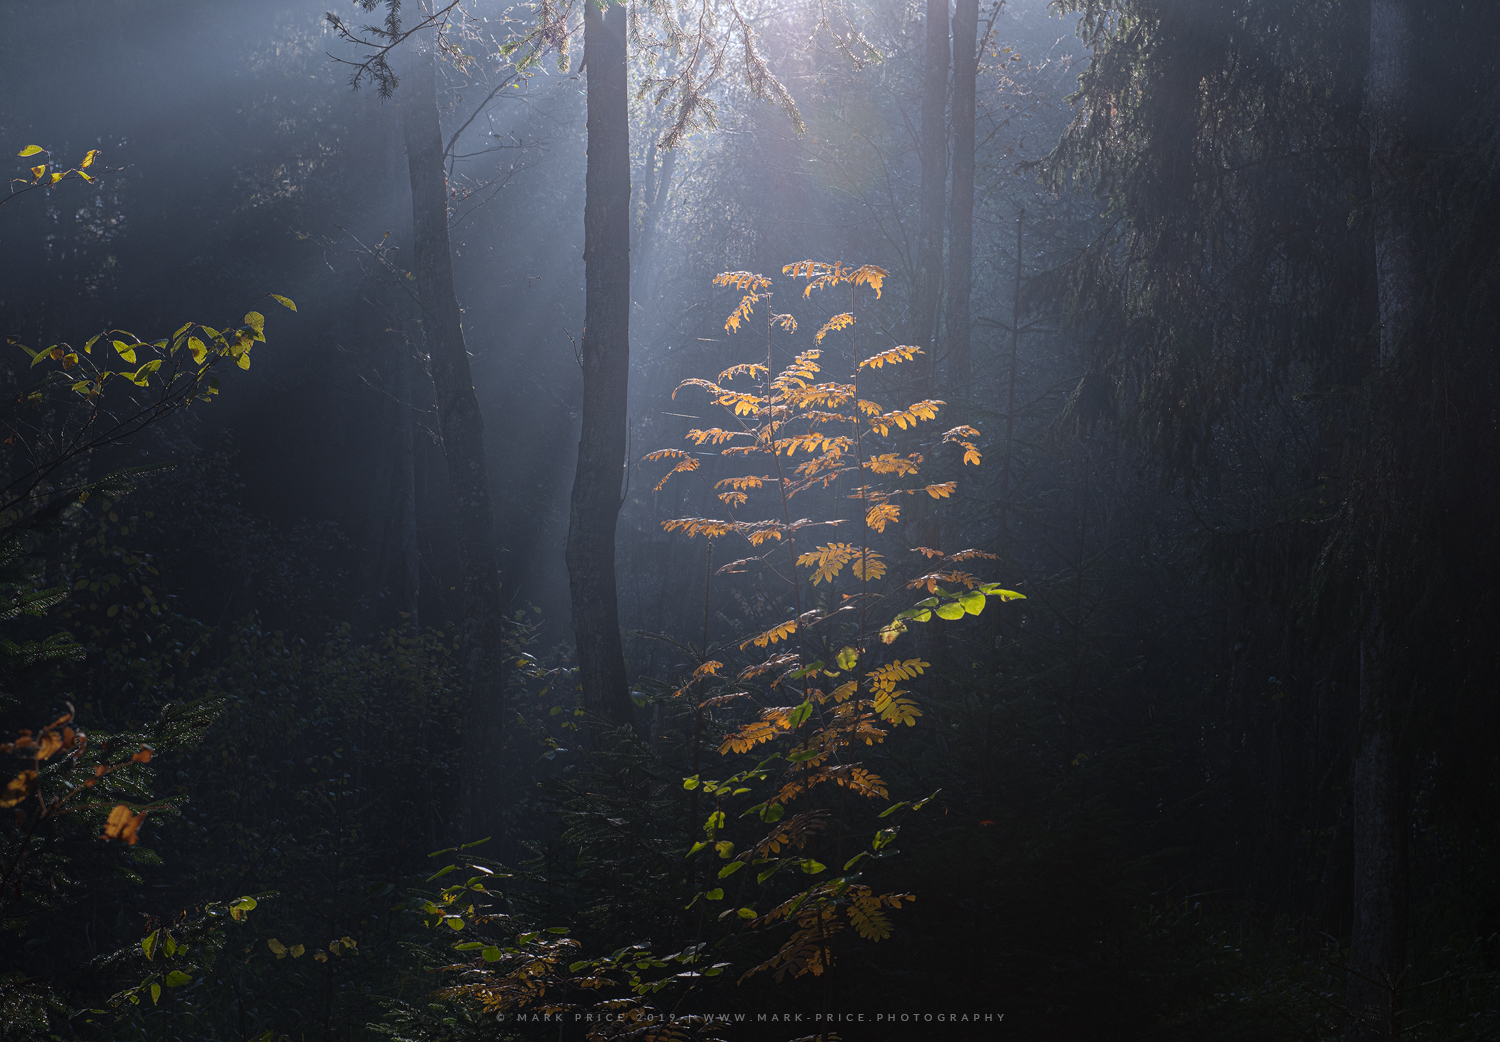 Autumn begins to erupt in a foggy forest in the Northern Dolomites